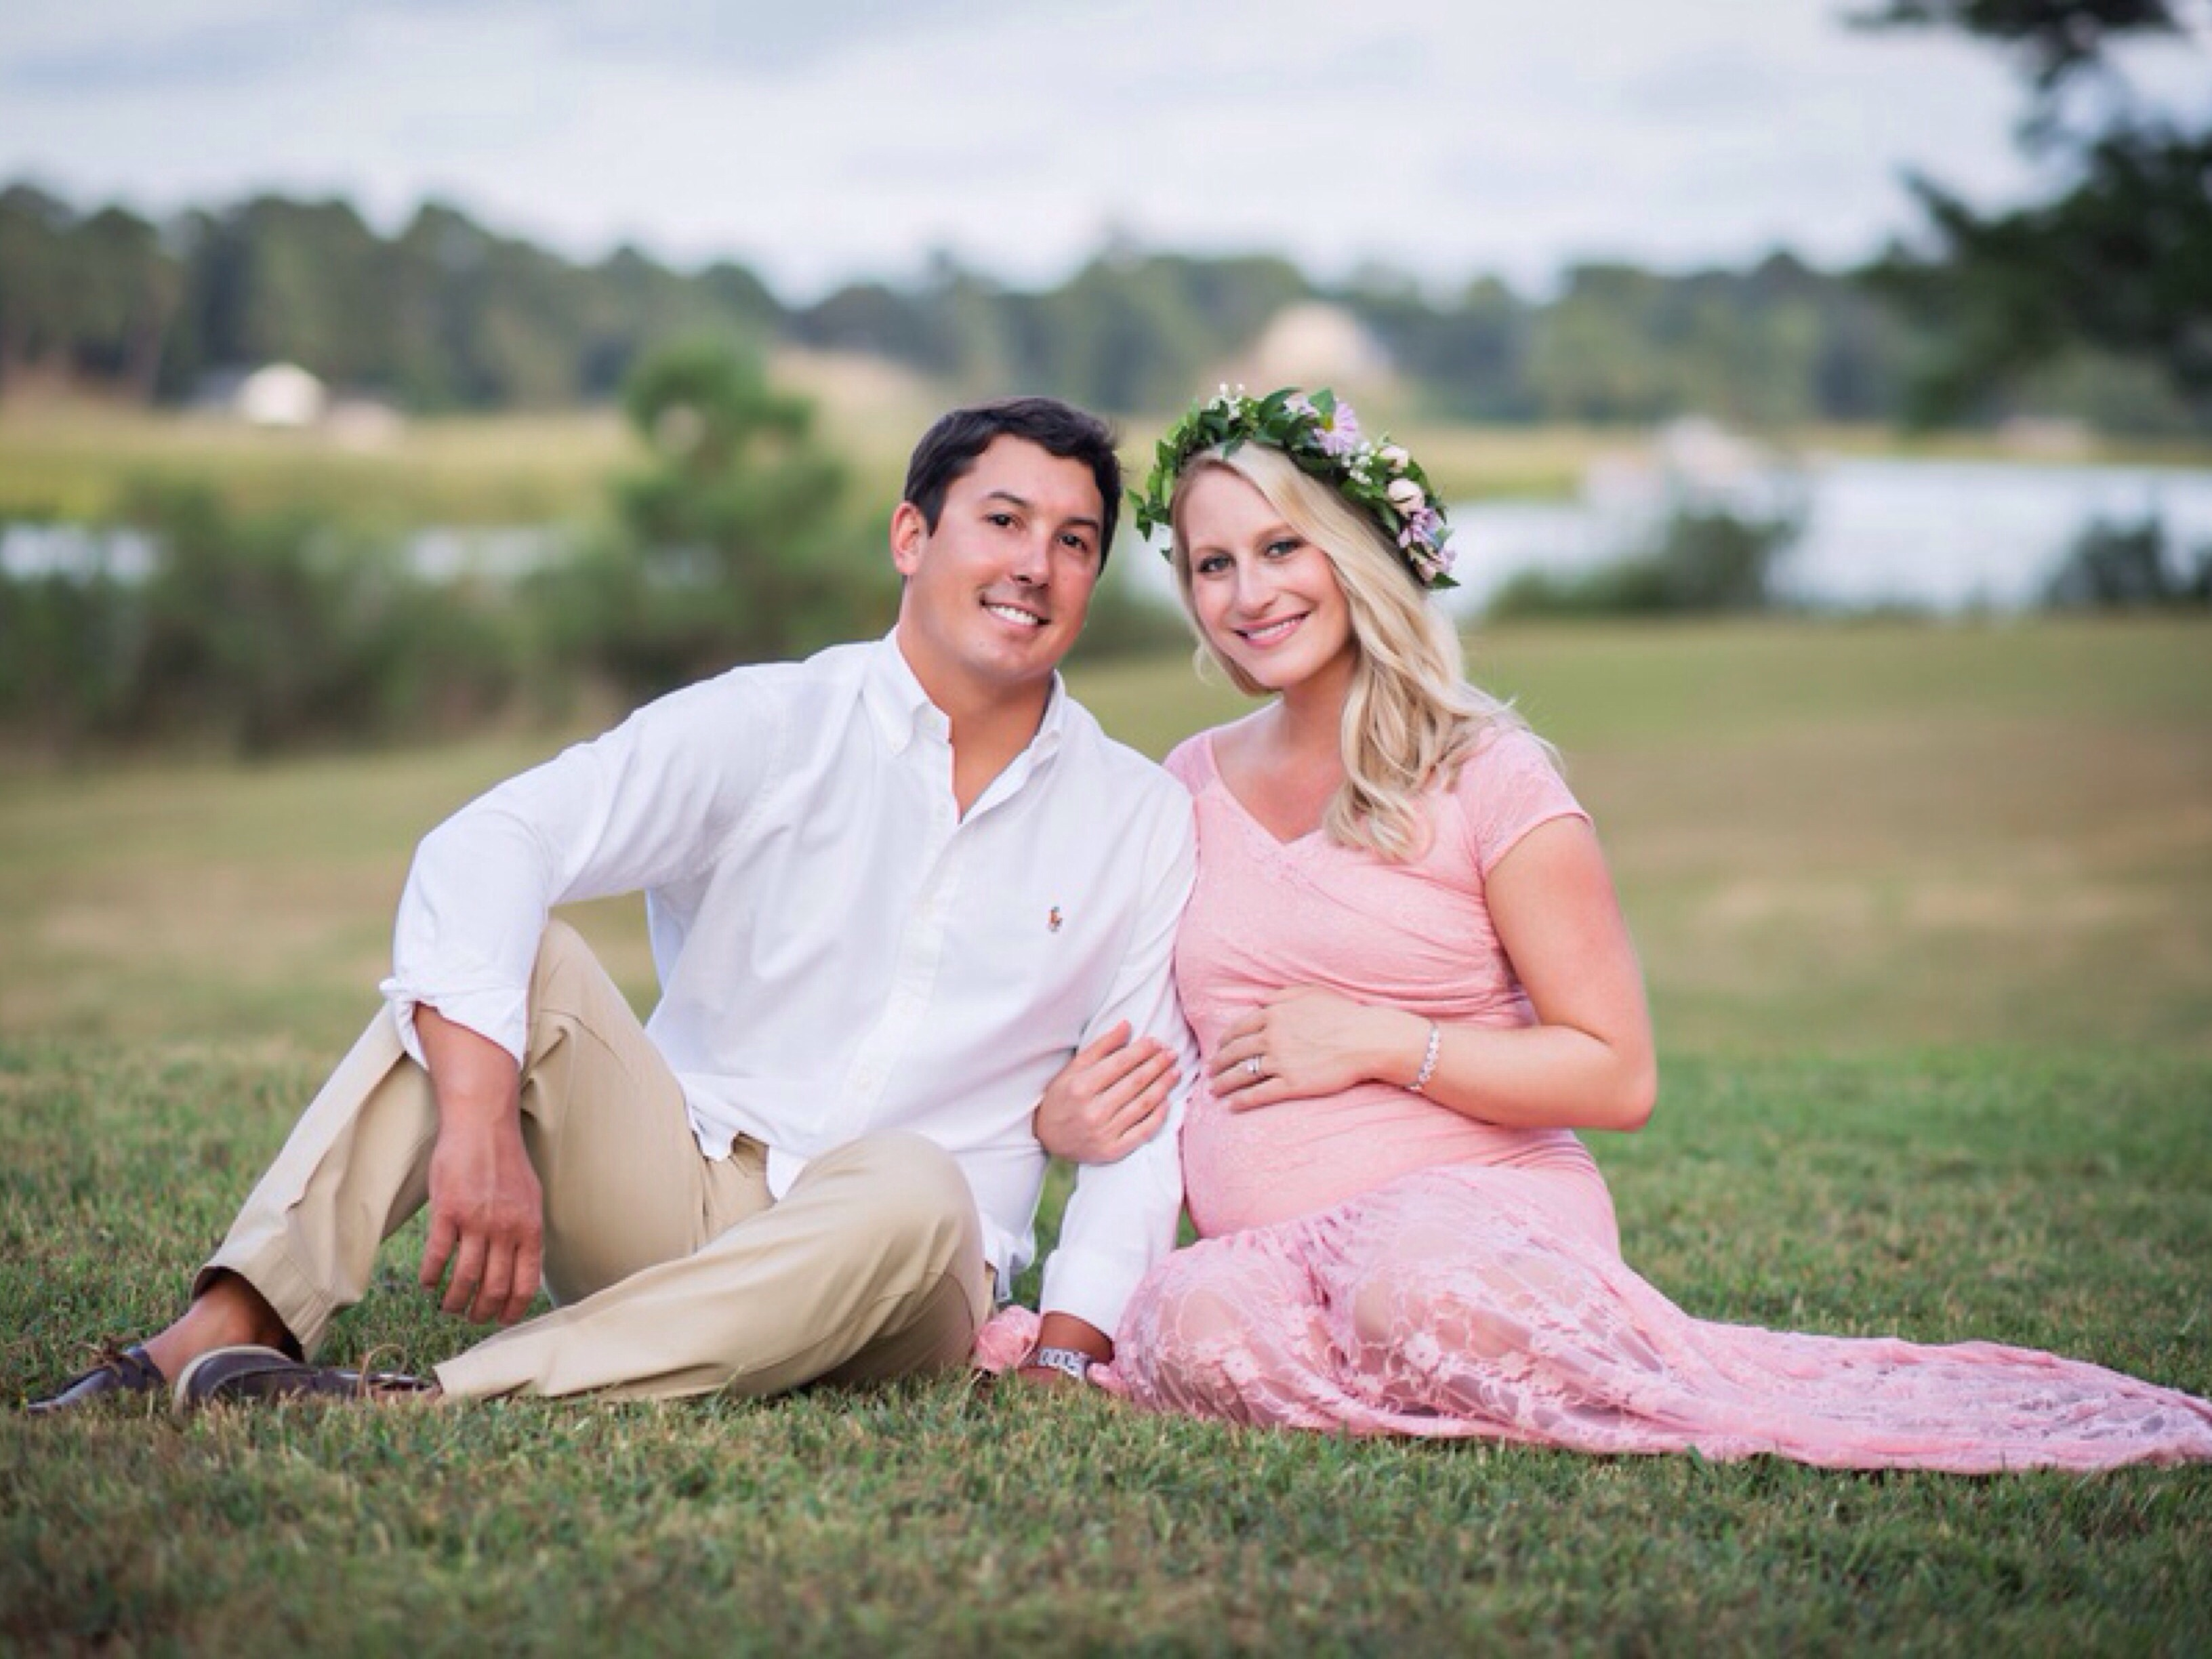 Windsor Castle Park Maternity Session: Photography by Ross Costanza Photography via Heather Renee Celebrations